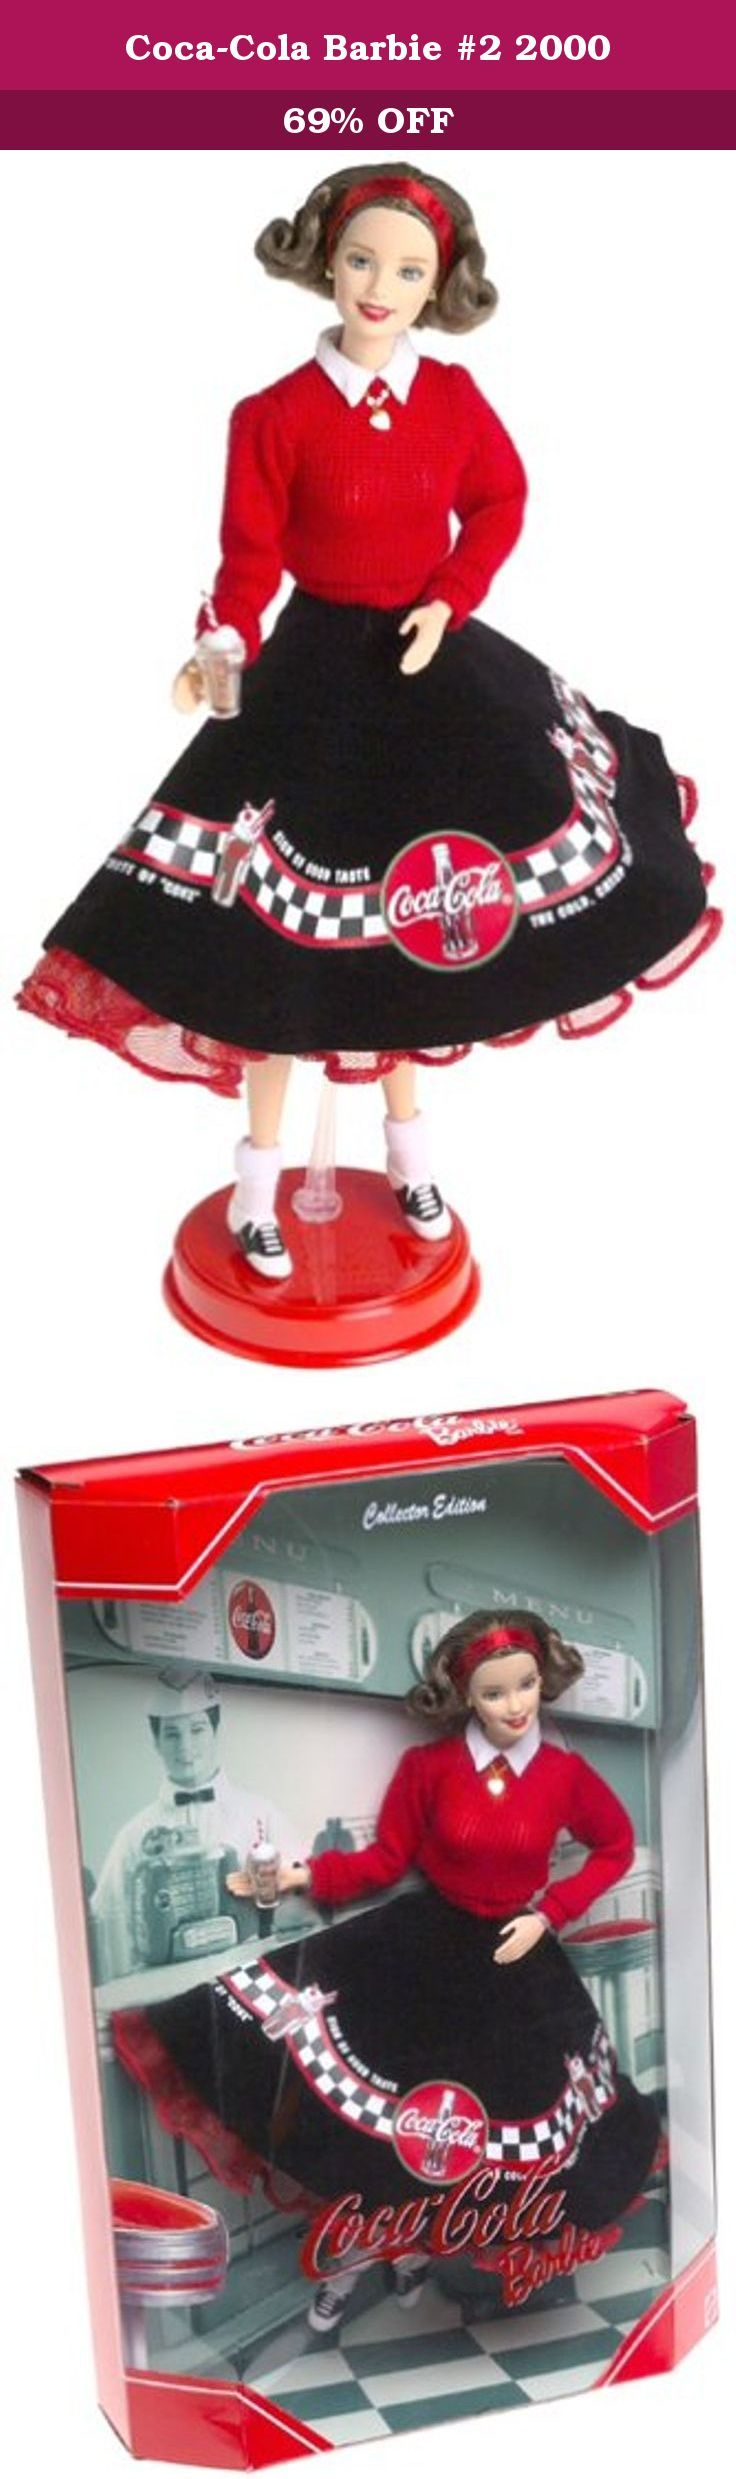 Coca-Cola Barbie #2 2000. 2nd in the Coca Cola Barbie Series. Let's go to the hop with Barbie! Dressed in her poodle skirt, bobby socks, red sweater, and matching headband, Barbie is ready to kick up her saddle shoes at the sock hop. Barbie's brown hair is curled in a tight fifties flip, and her cherry red lipstick gives her the perky teenage style of long ago. Her matching gold ball earrings and sweetheart locket are just the right touch to complete Barbie's wholesome look. The trim of…